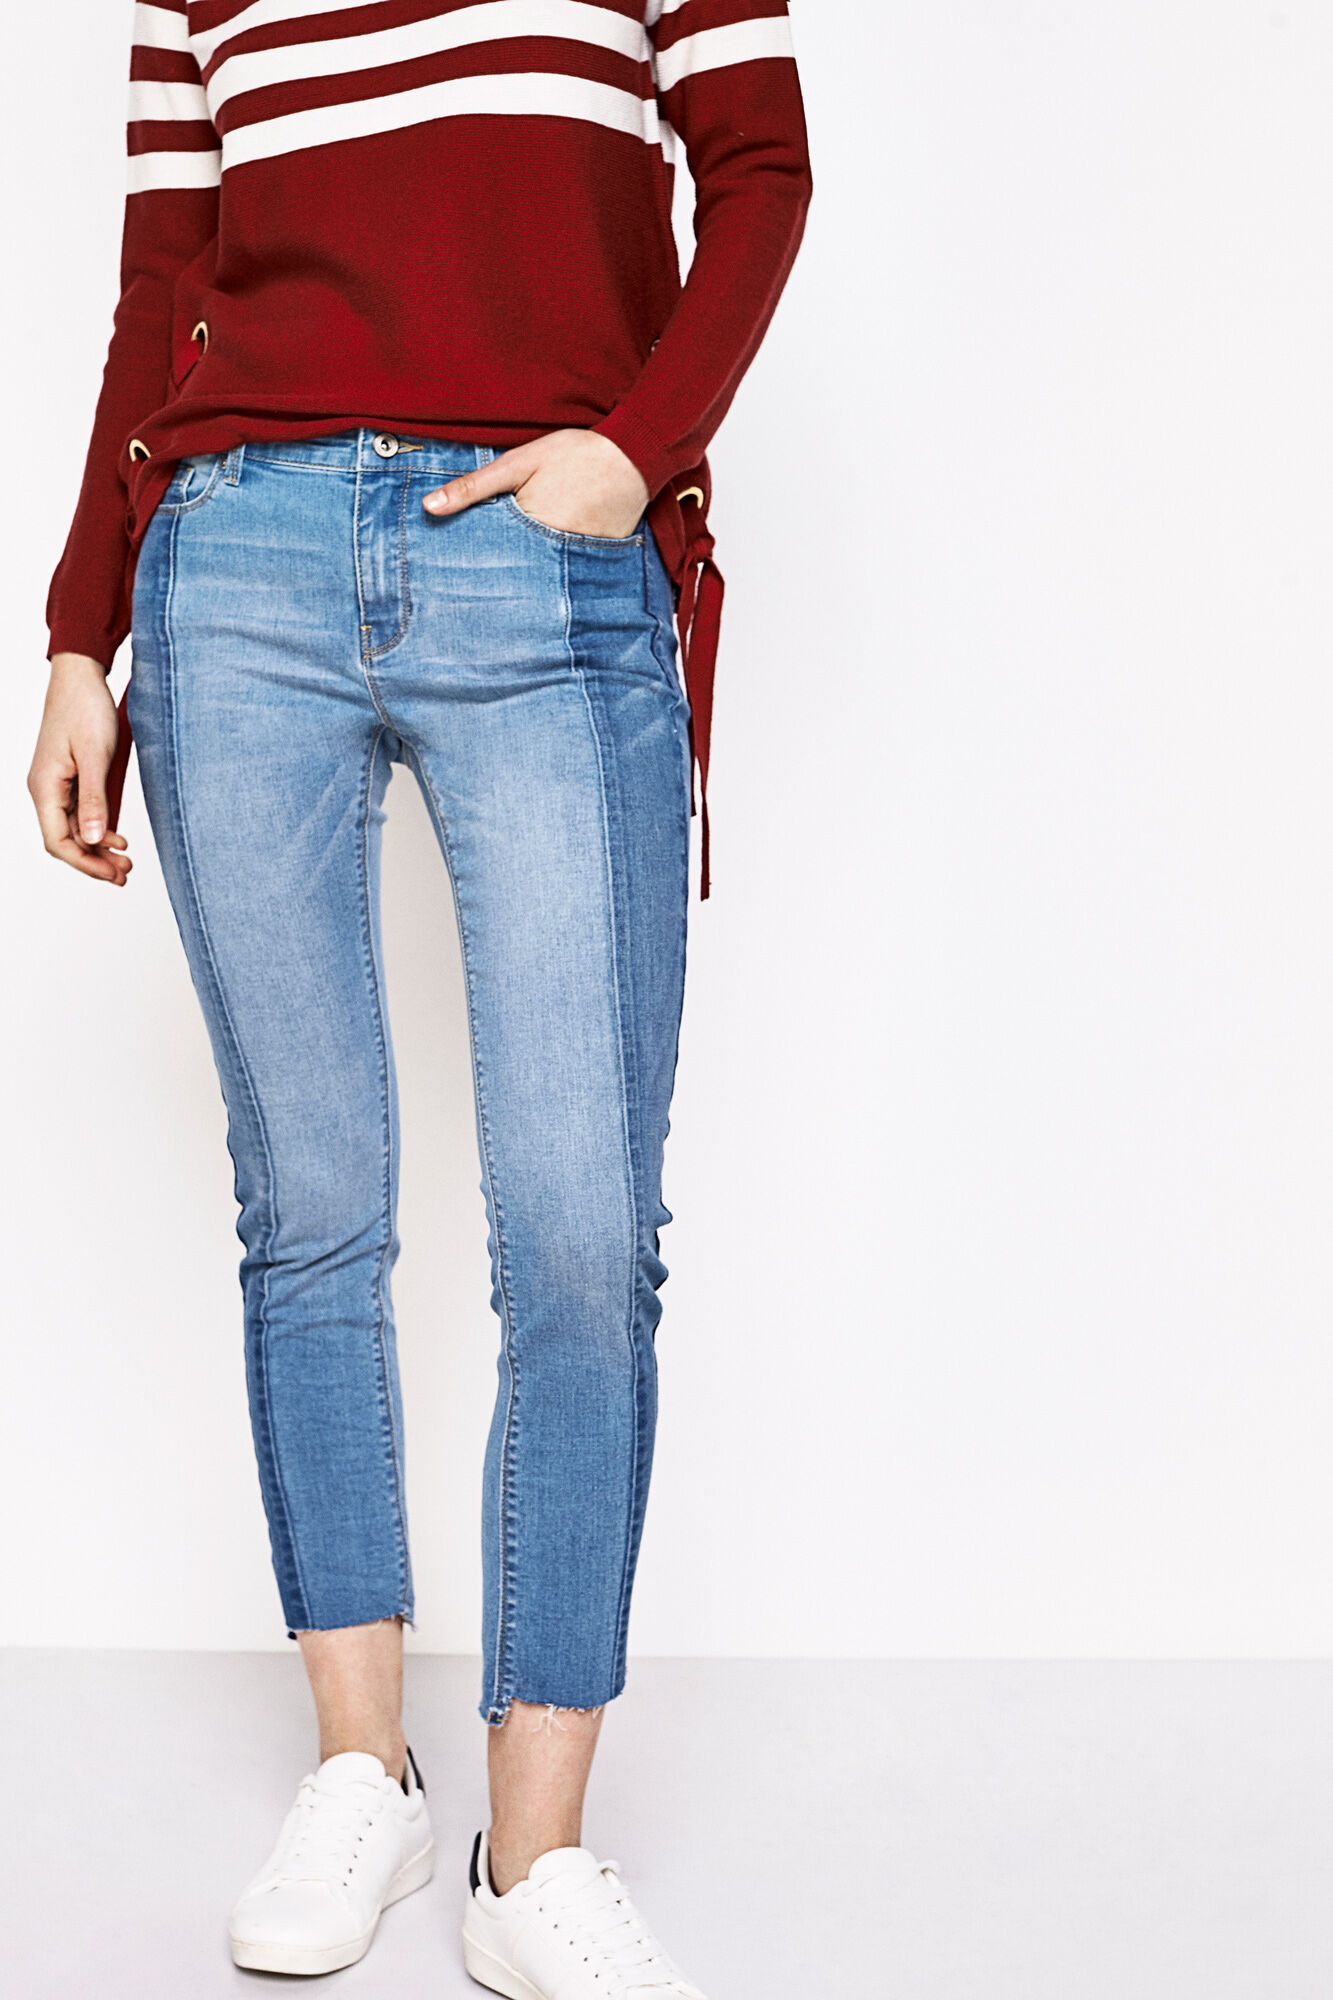 7 days to skinny jeans review